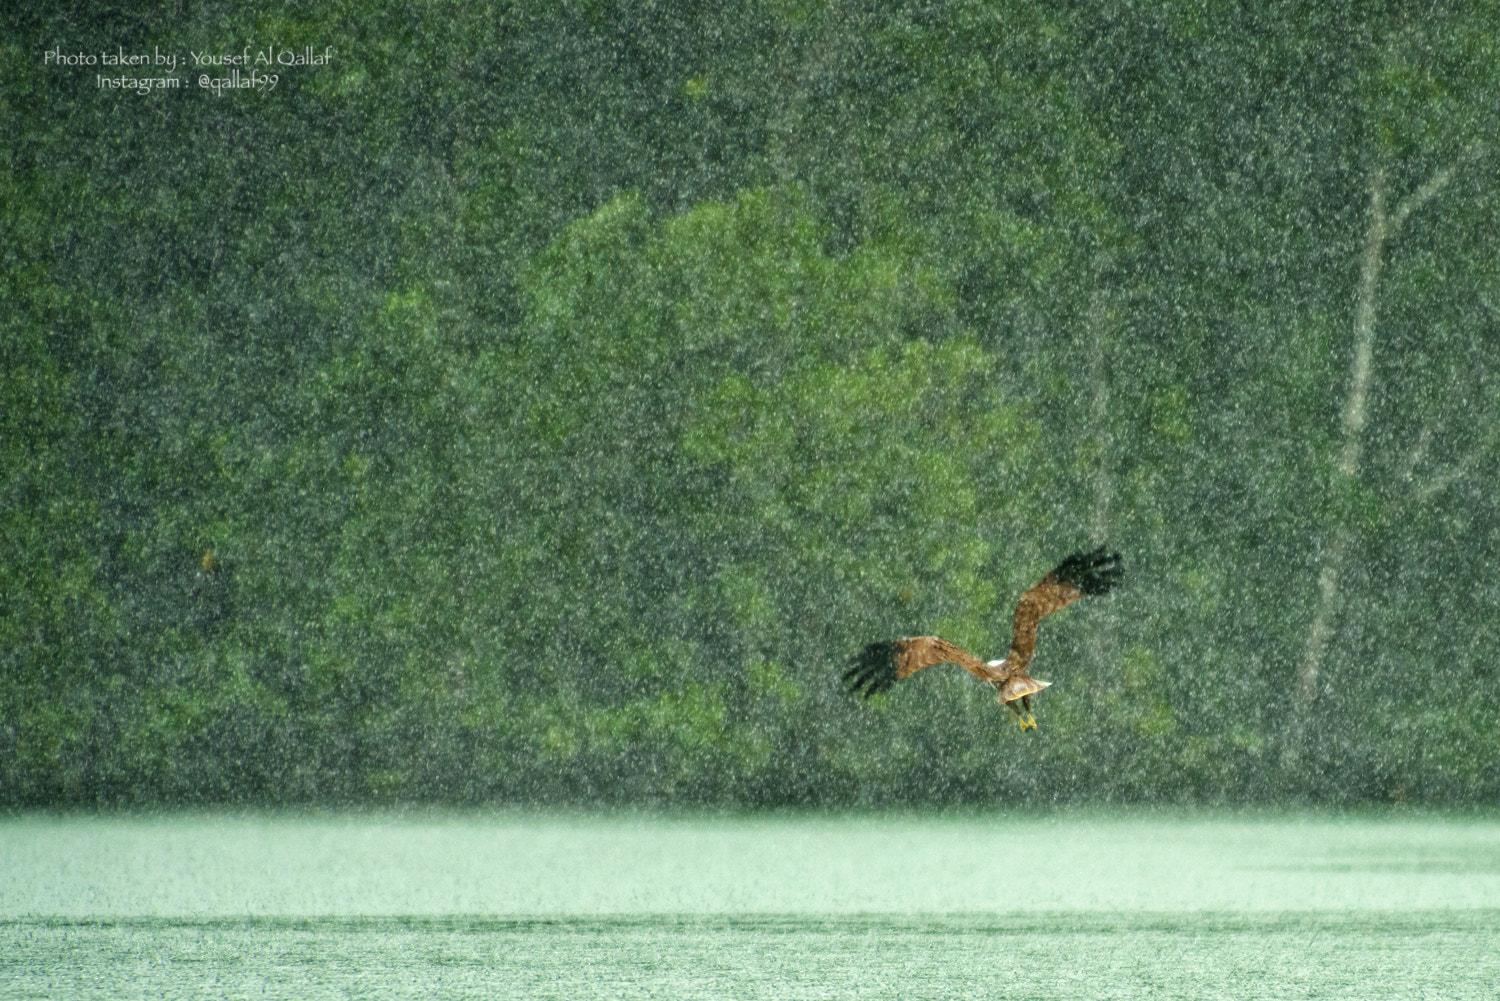 Photograph Under the rain by Yousef Al Qallaf on 500px